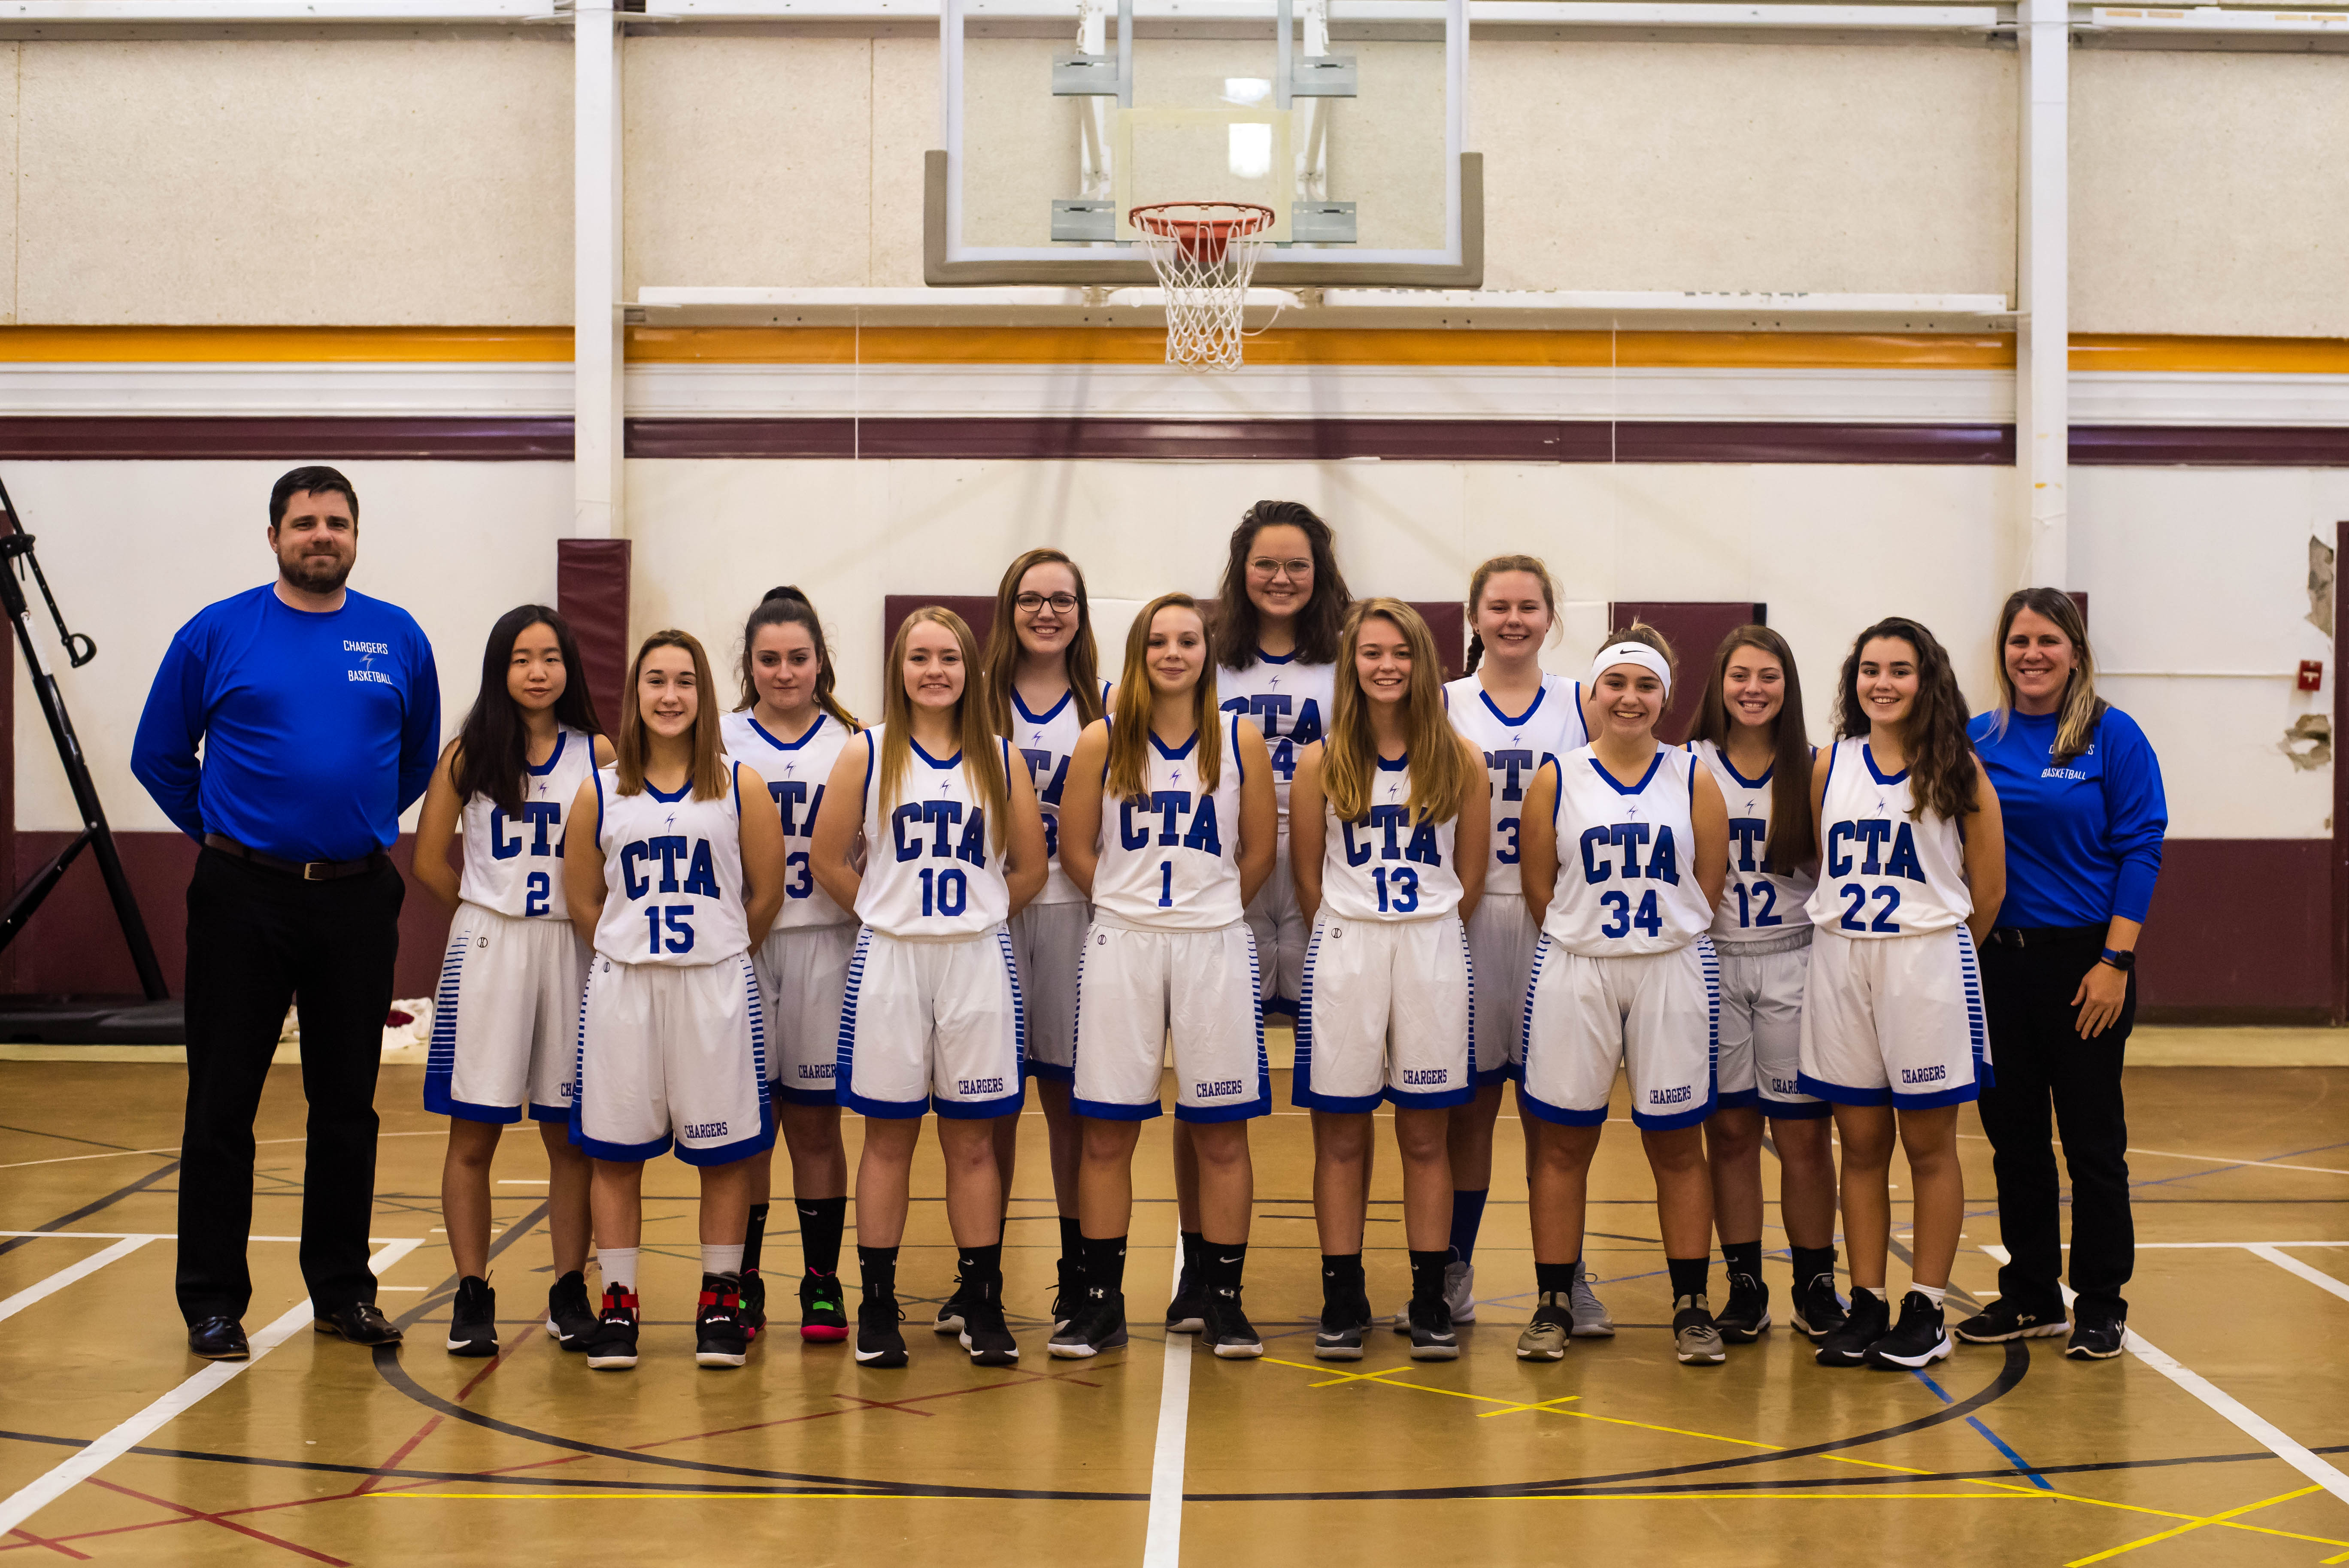 Picture of the Girls basketball